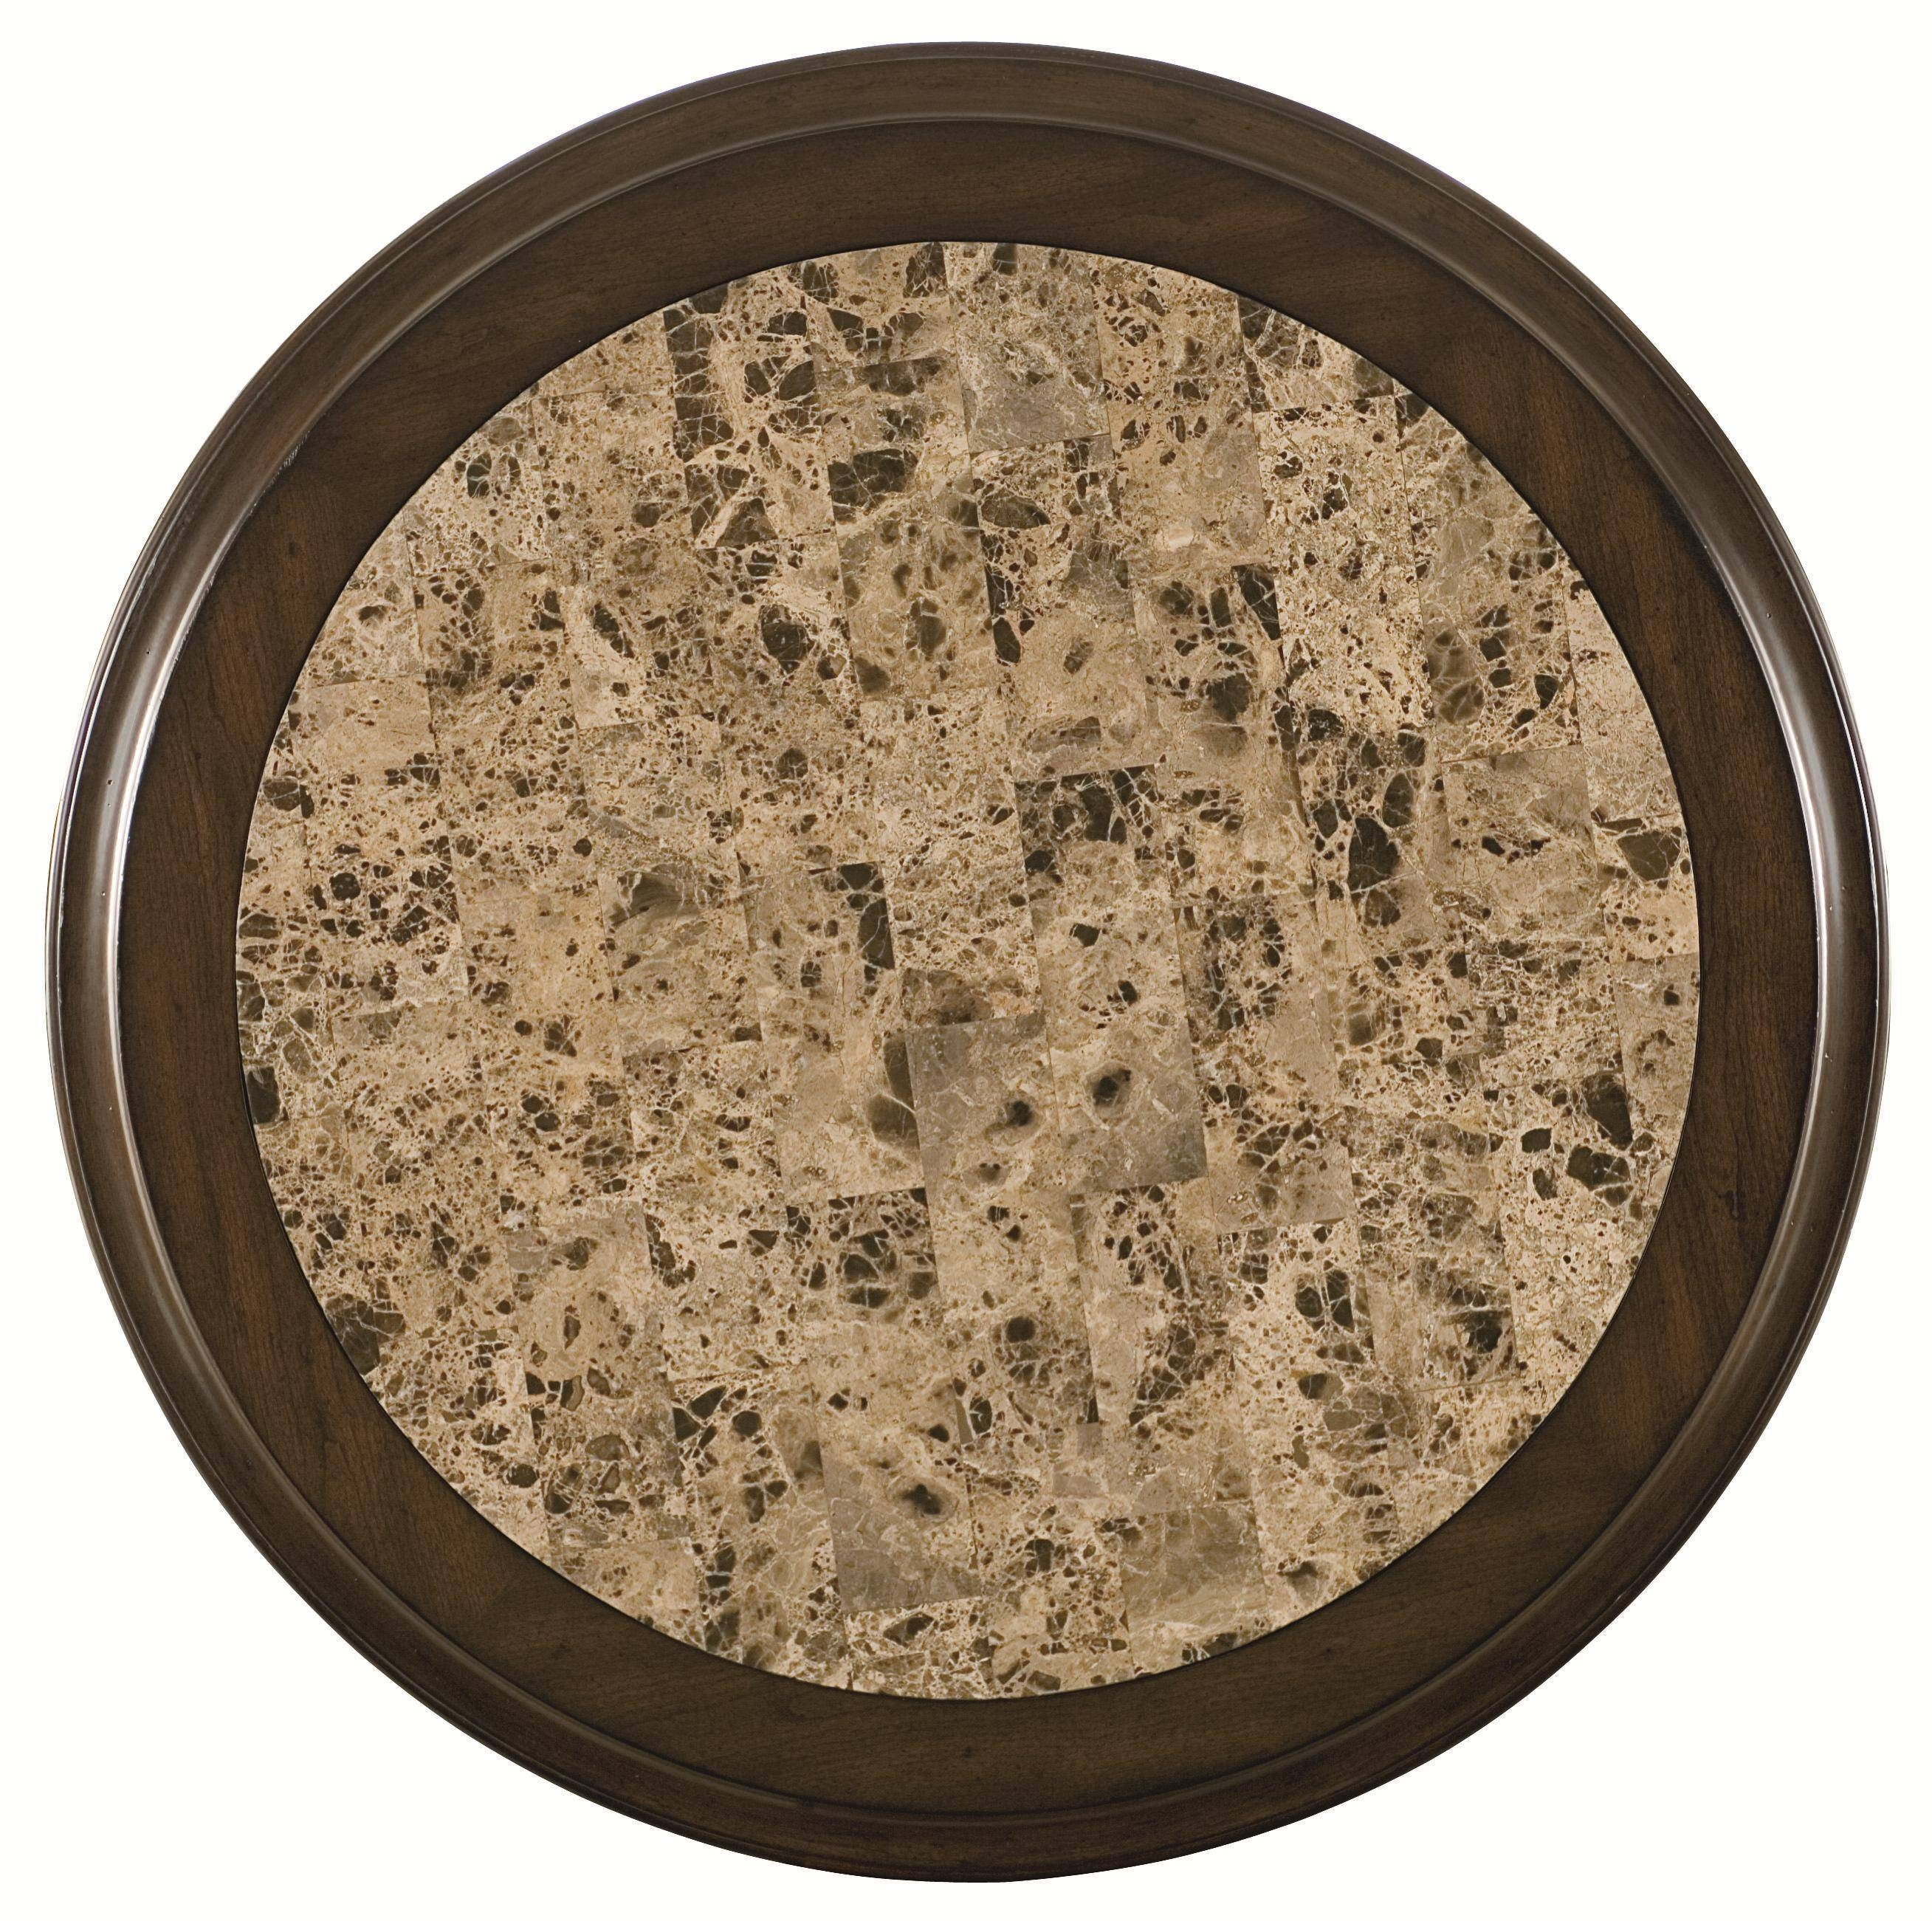 Cool Of Stone Top Coffee Table – Granite Coffee Table Top, Stone pertaining to Round Slate Top Coffee Tables (Image 3 of 30)